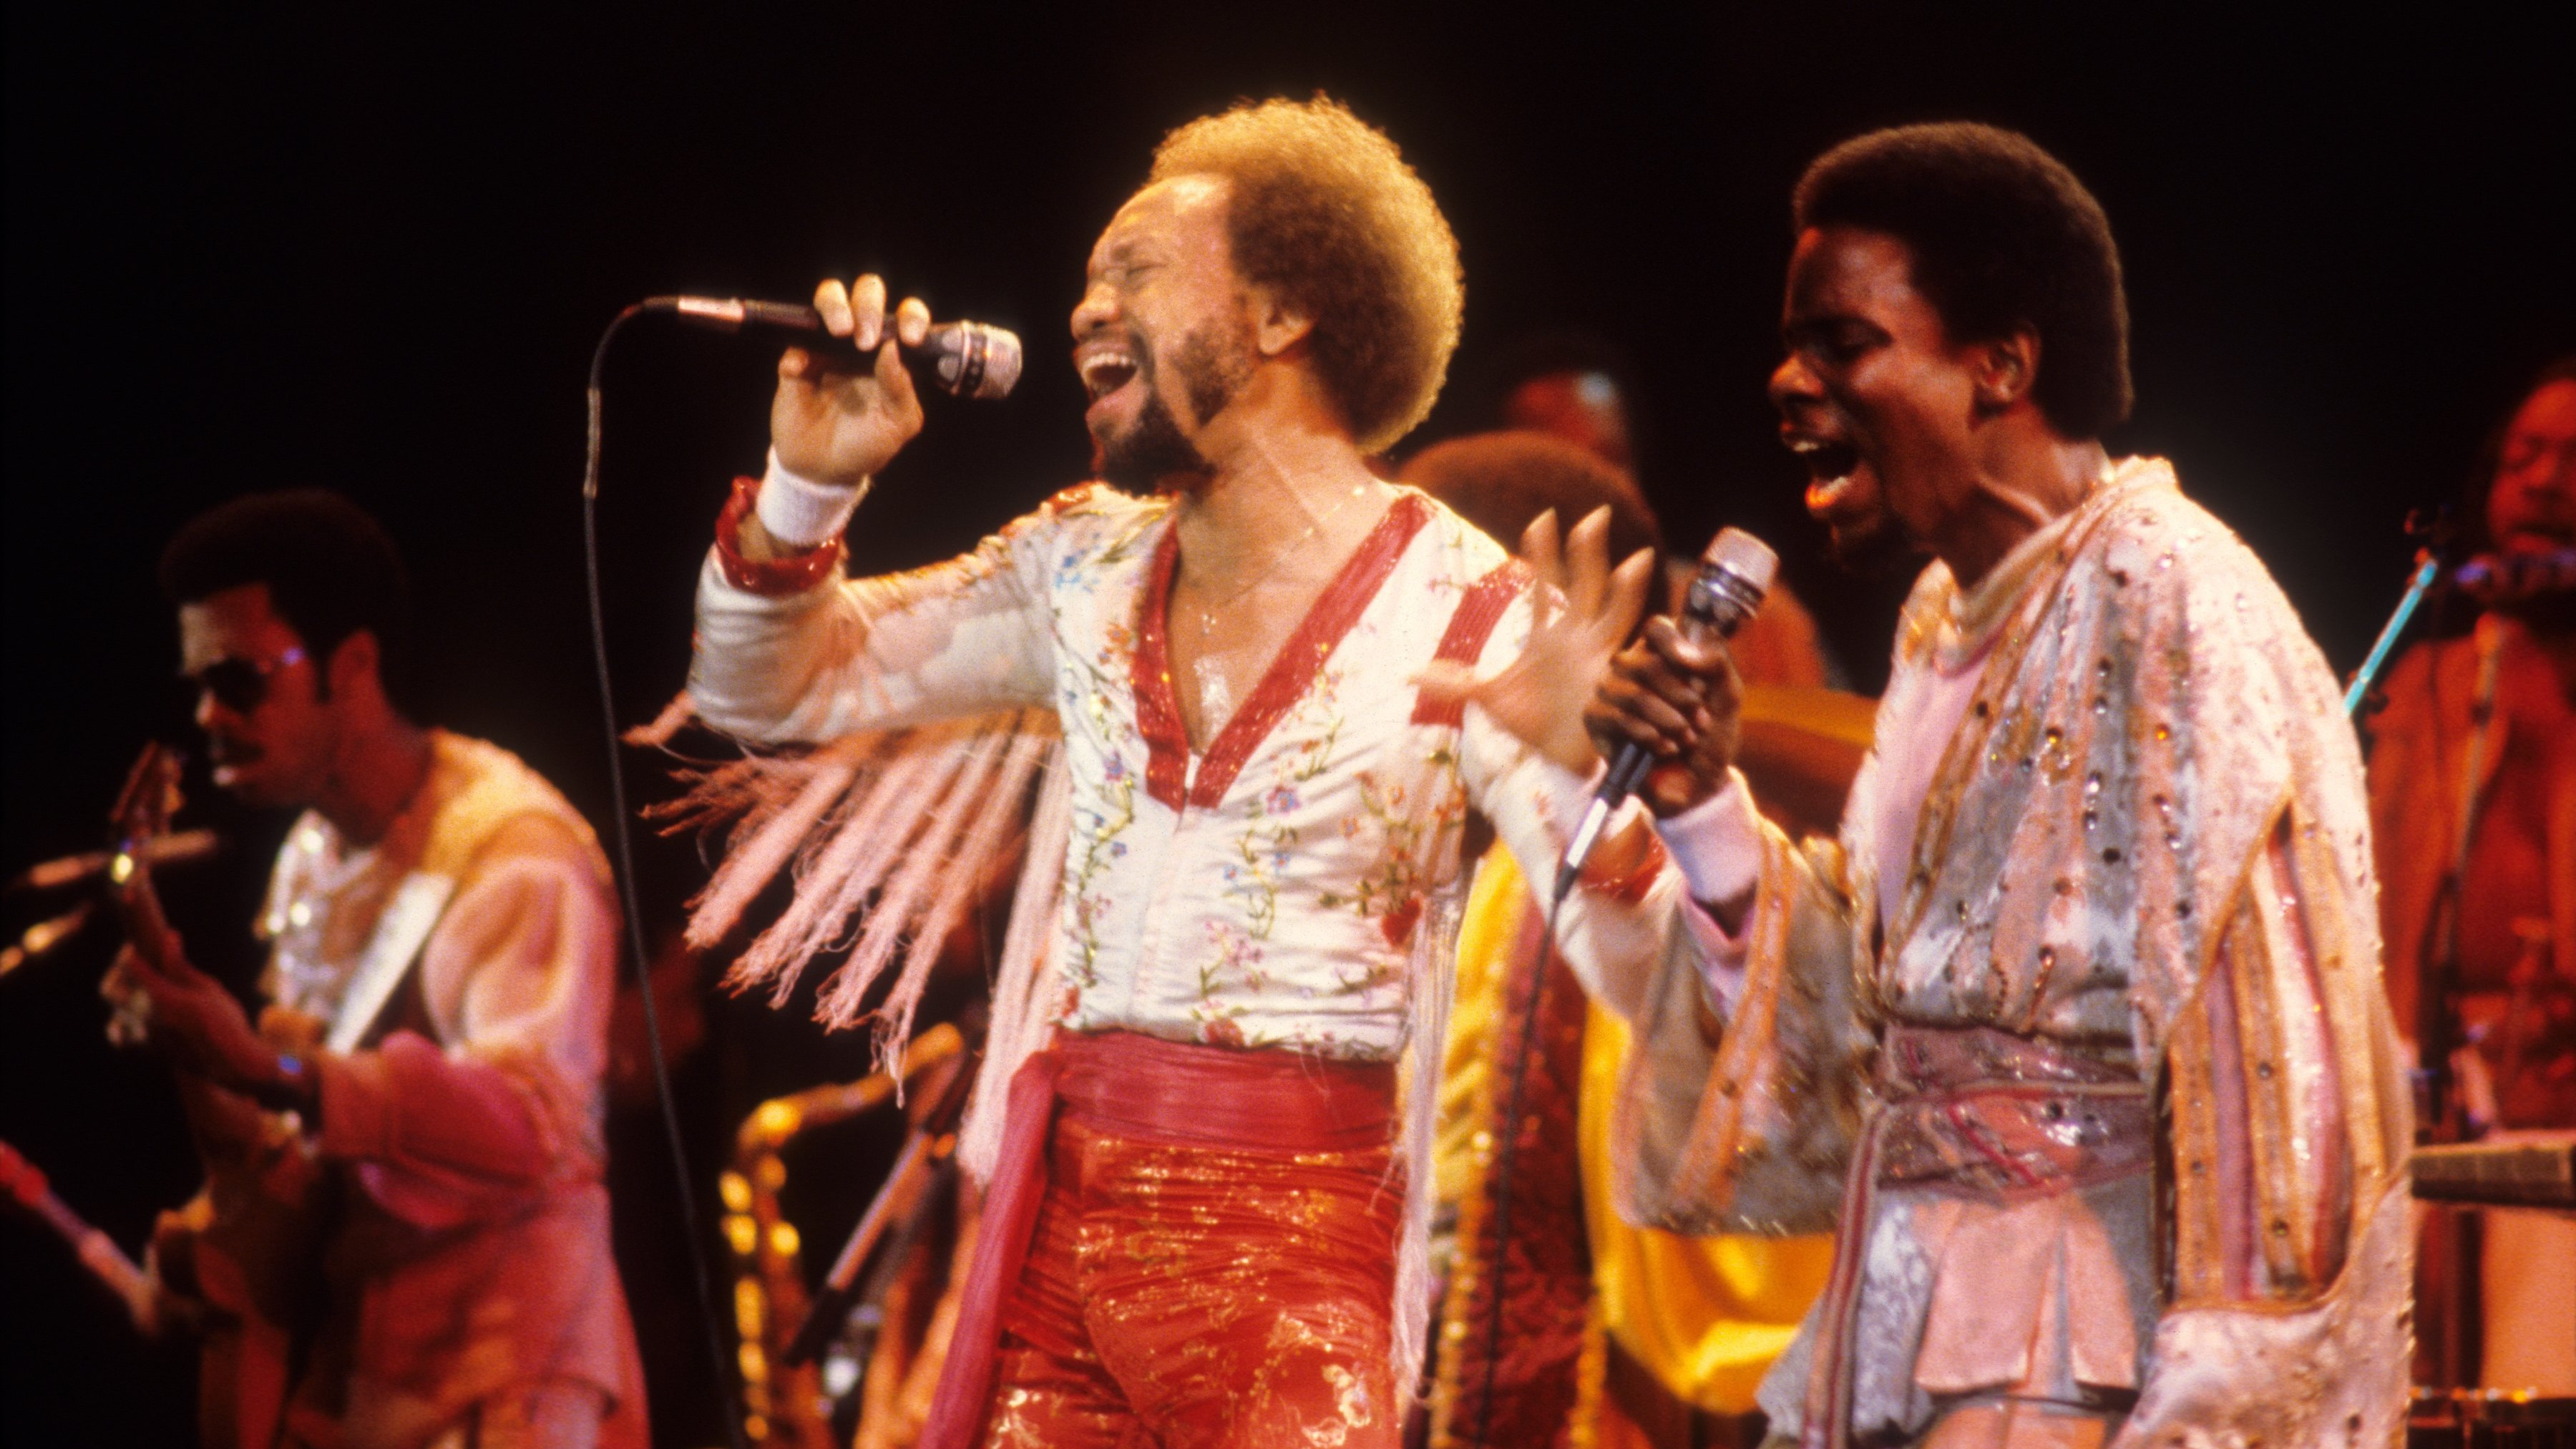 The elements – Earth, Wind & Fire